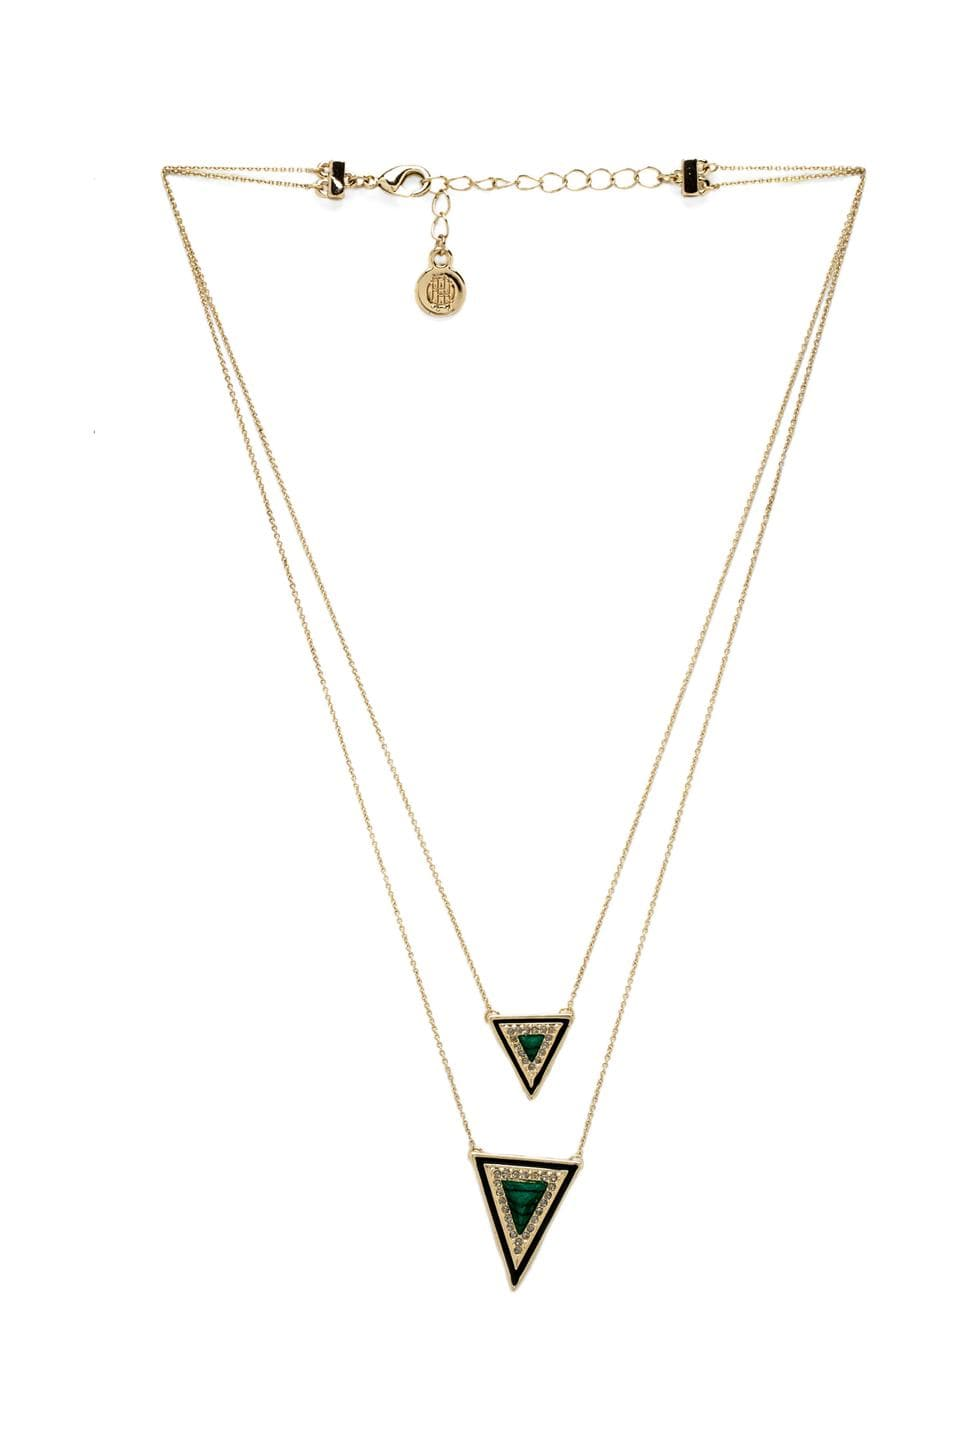 House of Harlow 1960 House of Harlow Teepee Triangle Necklace in Gold & Malachite